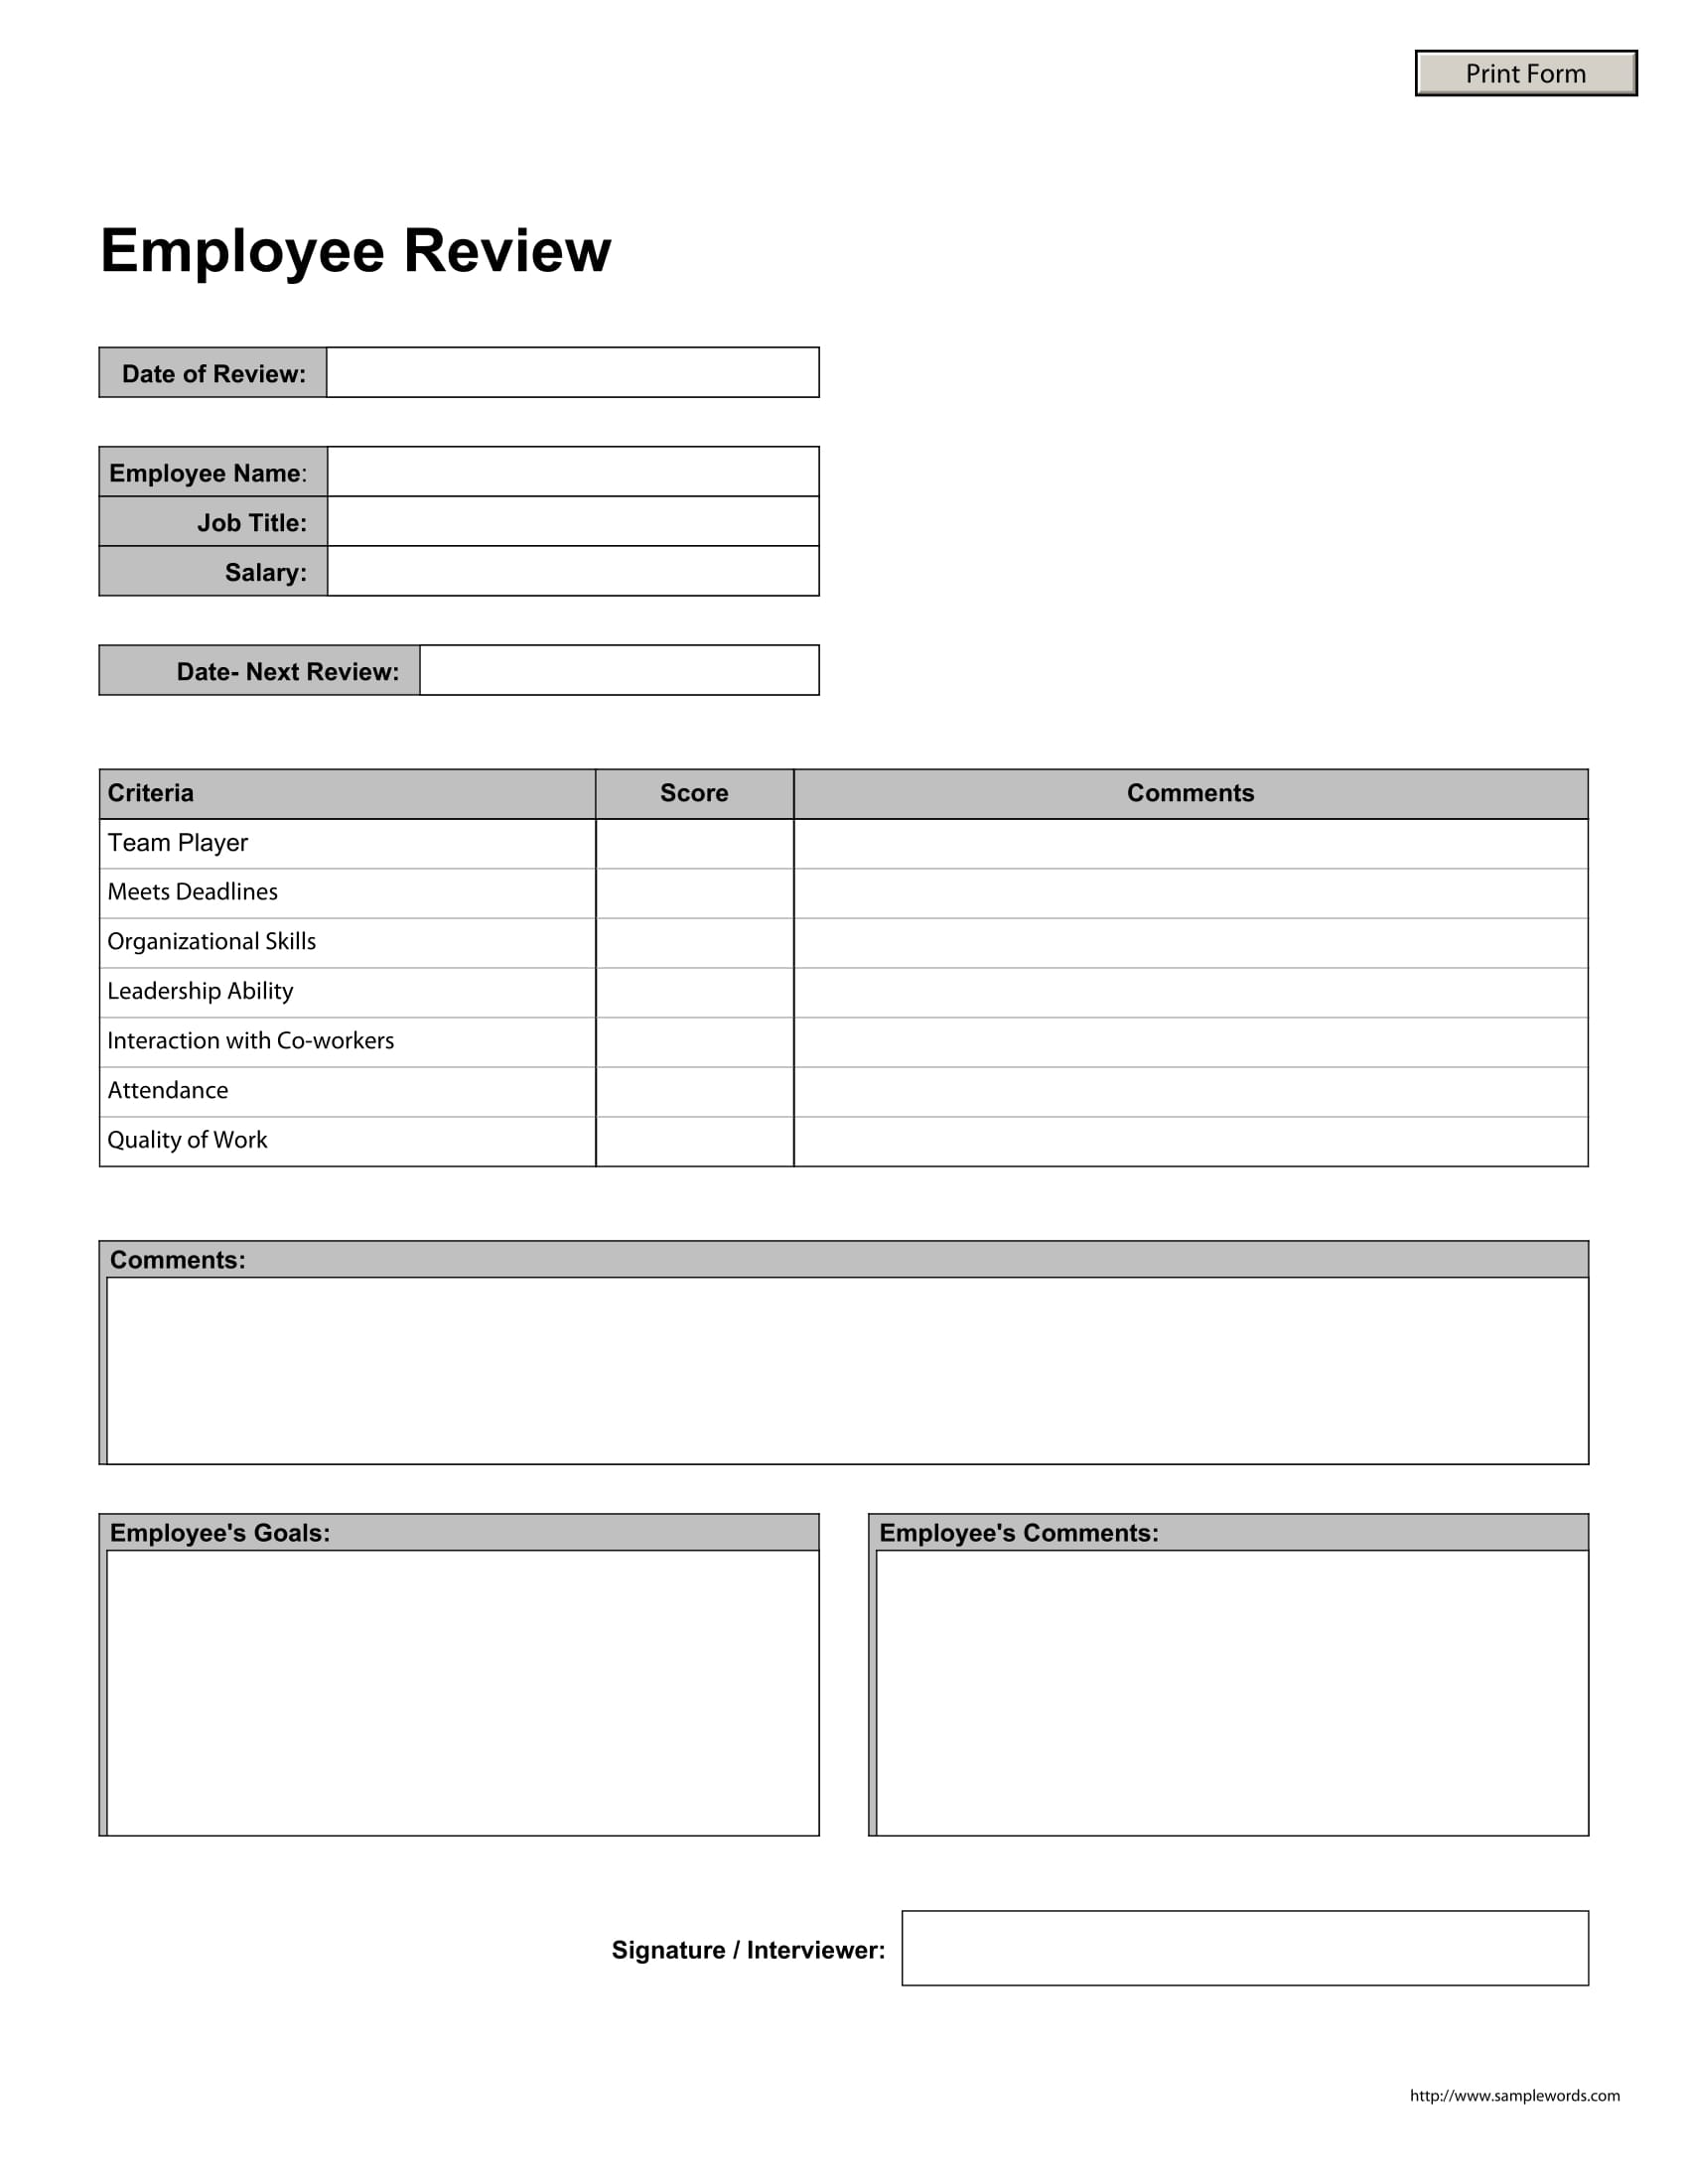 14+ Forms for Employee Reviews